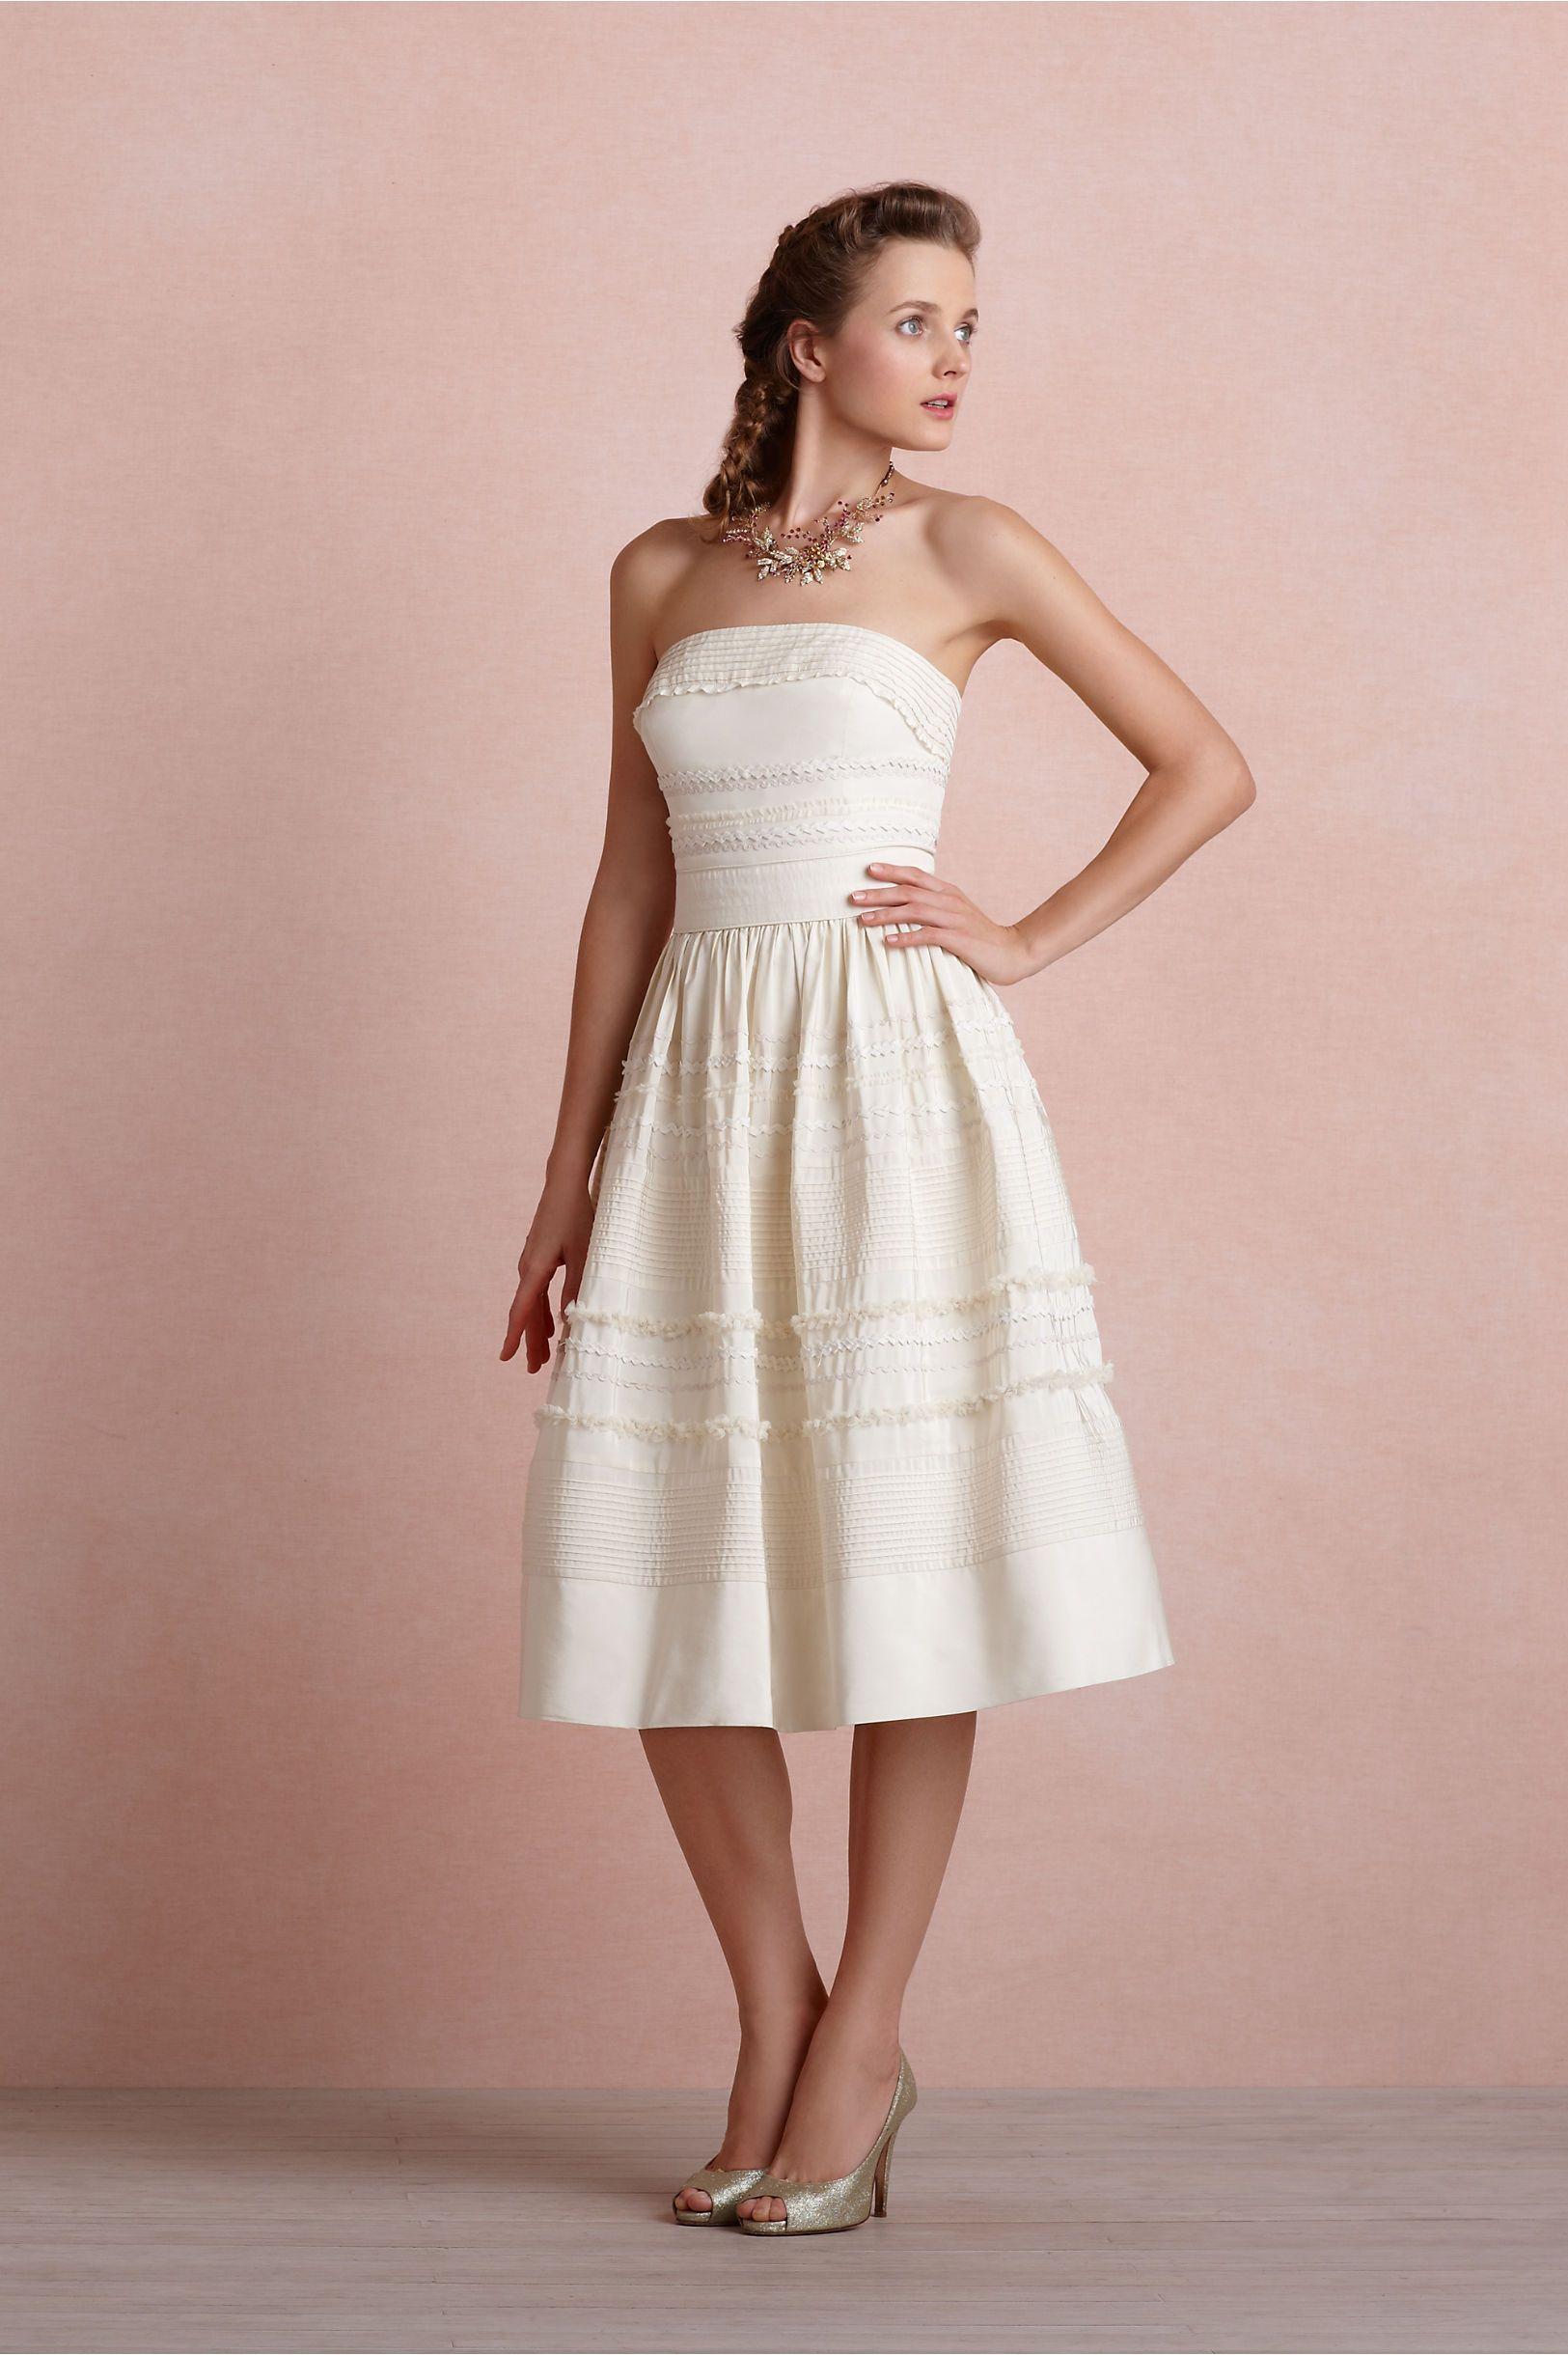 BHLDN Fondant Tea Dress Size 6 Wedding Dress | Pinterest | Nos ...